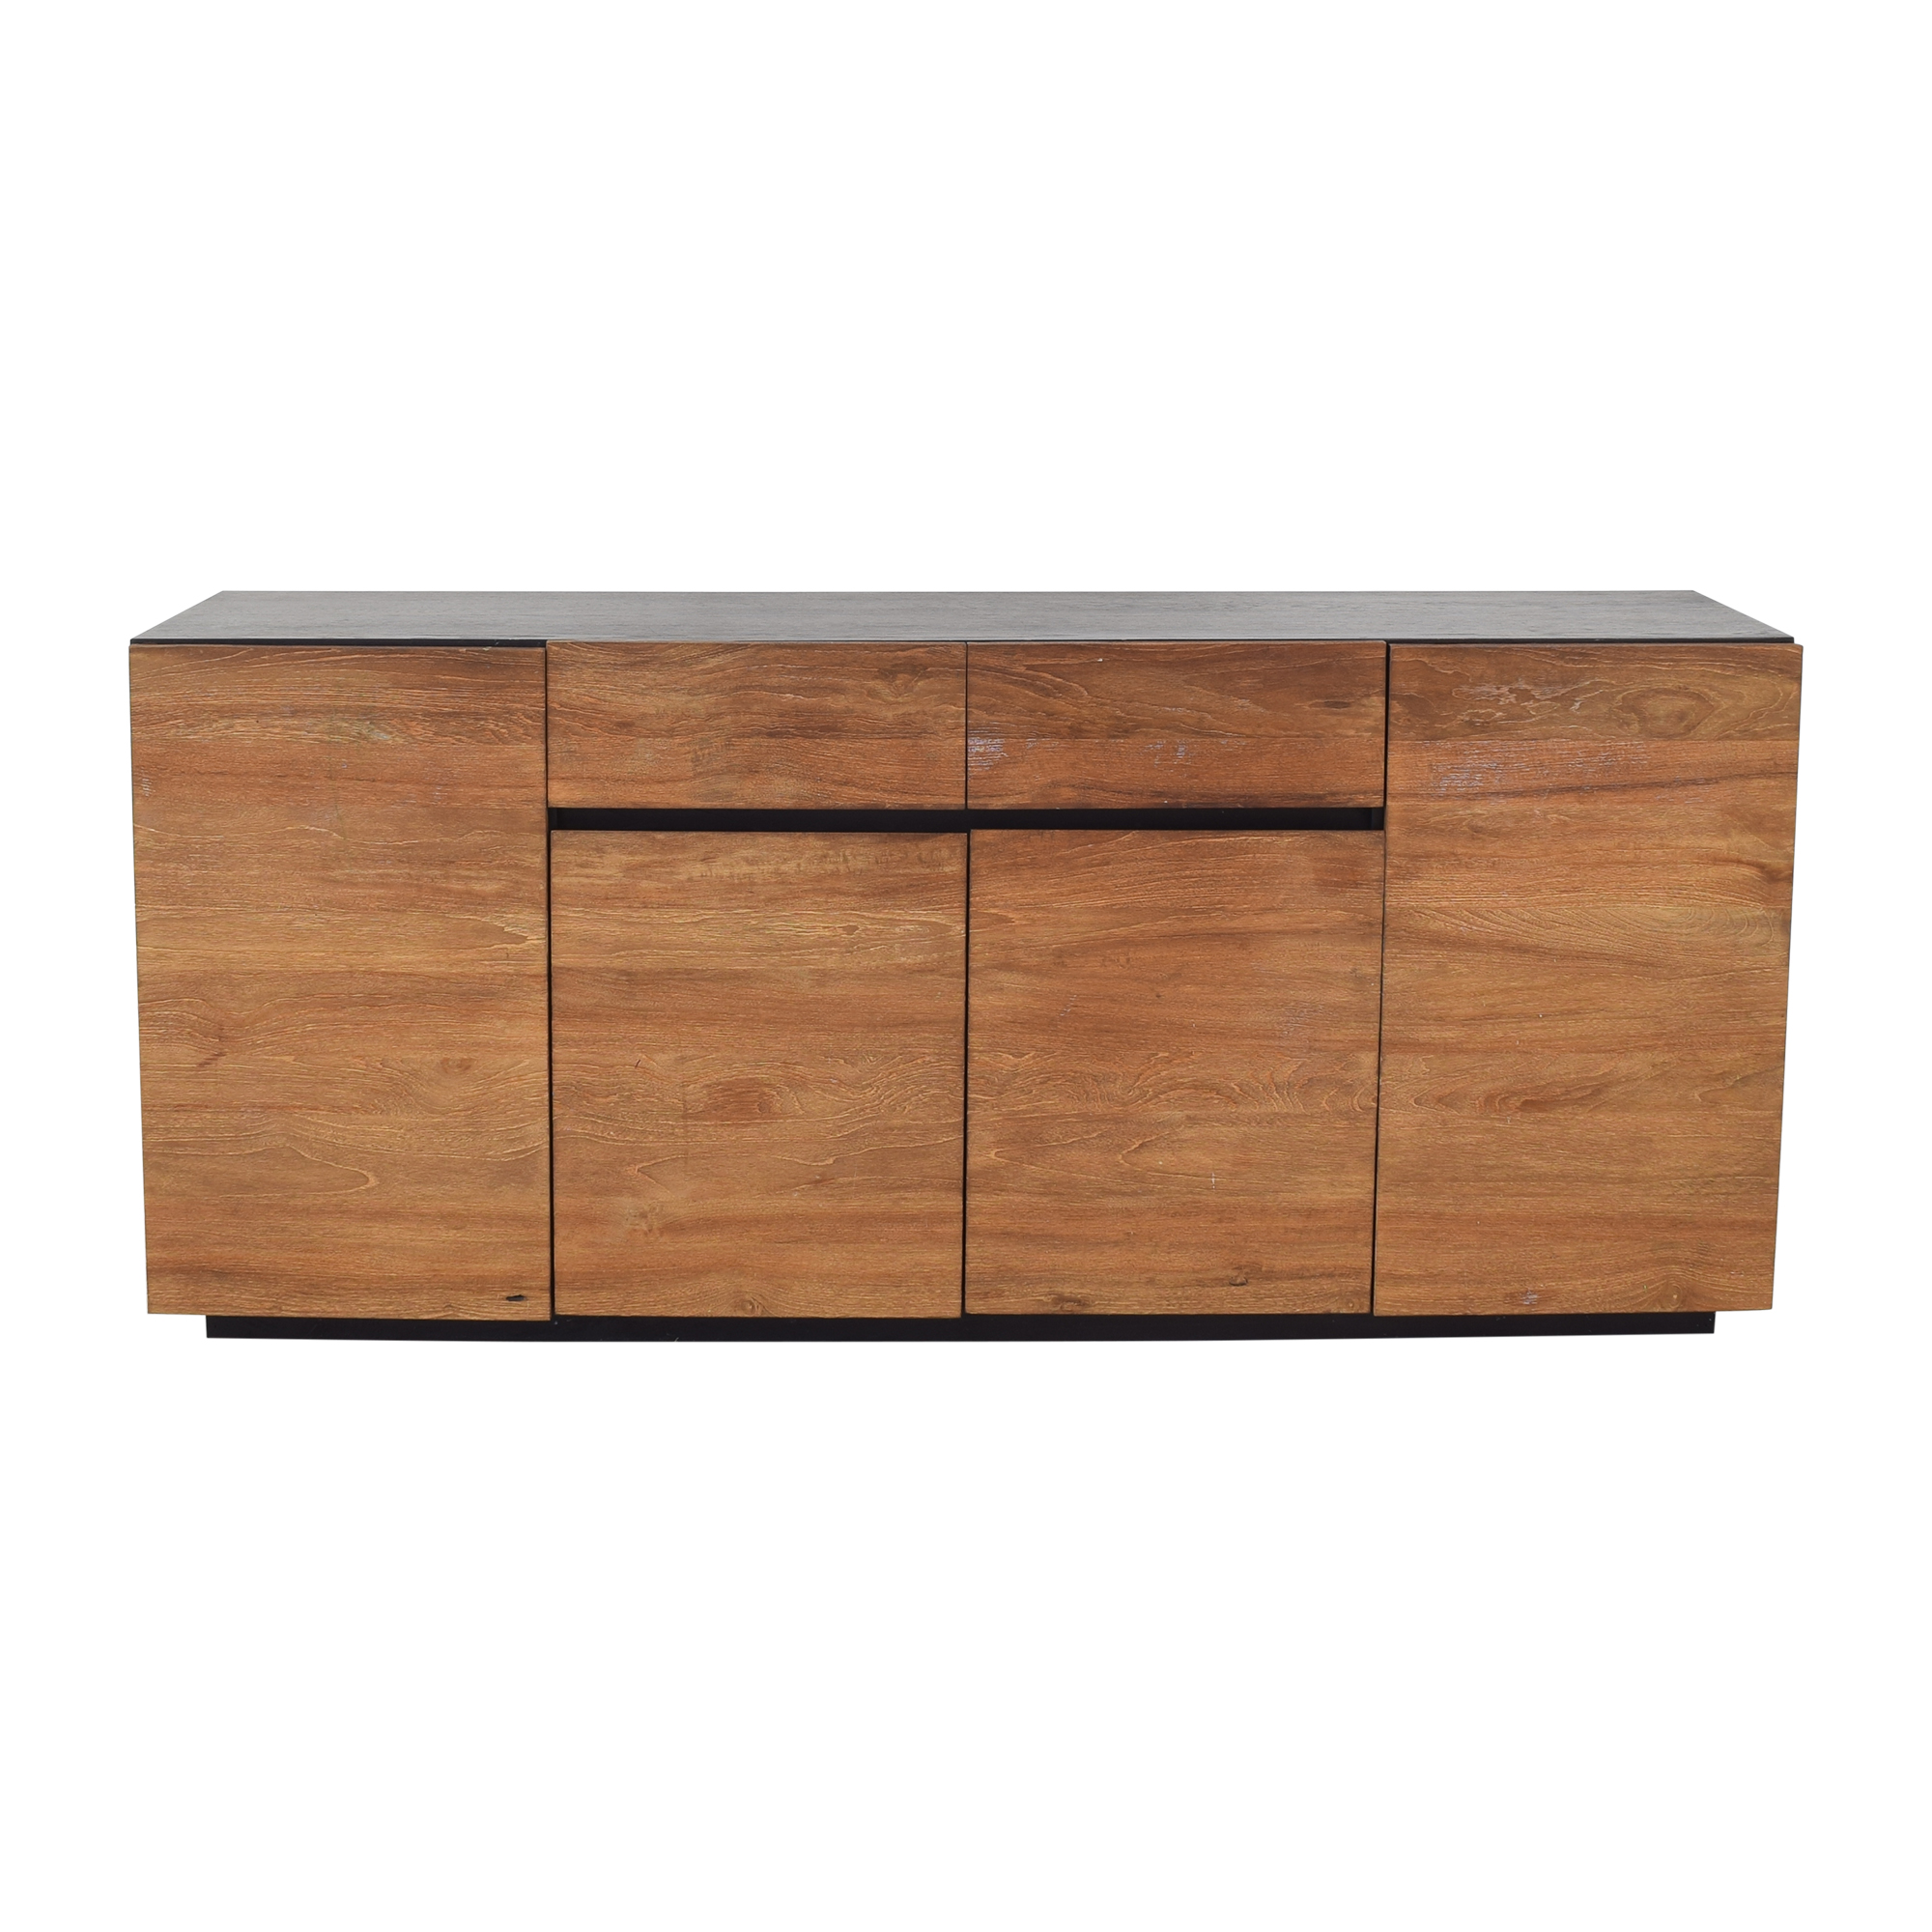 shop ABC Carpet & Home Sideboard ABC Carpet & Home